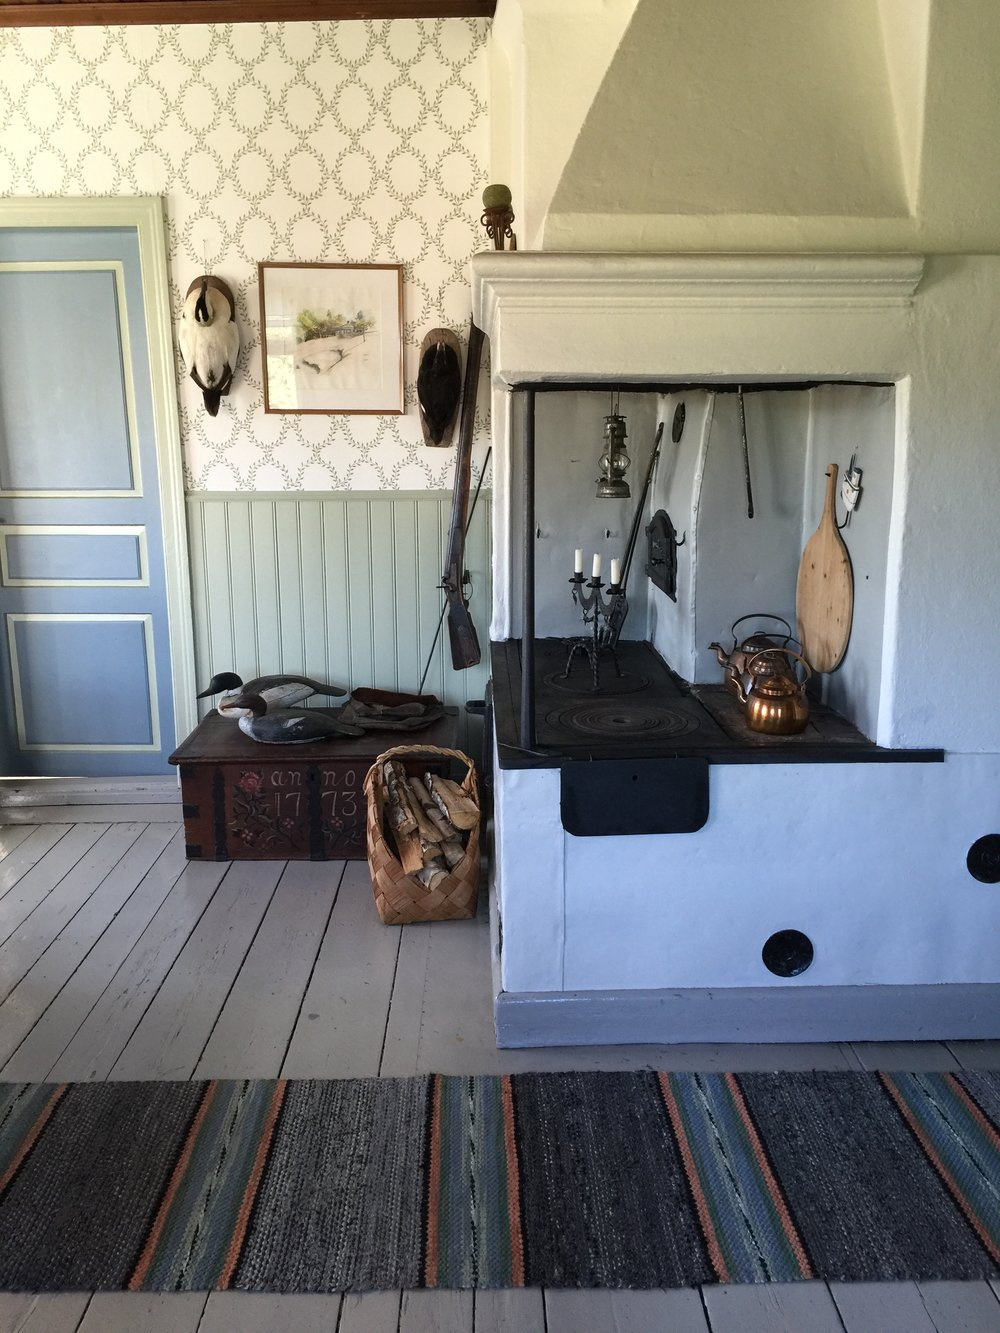 Aland stove in house.jpg